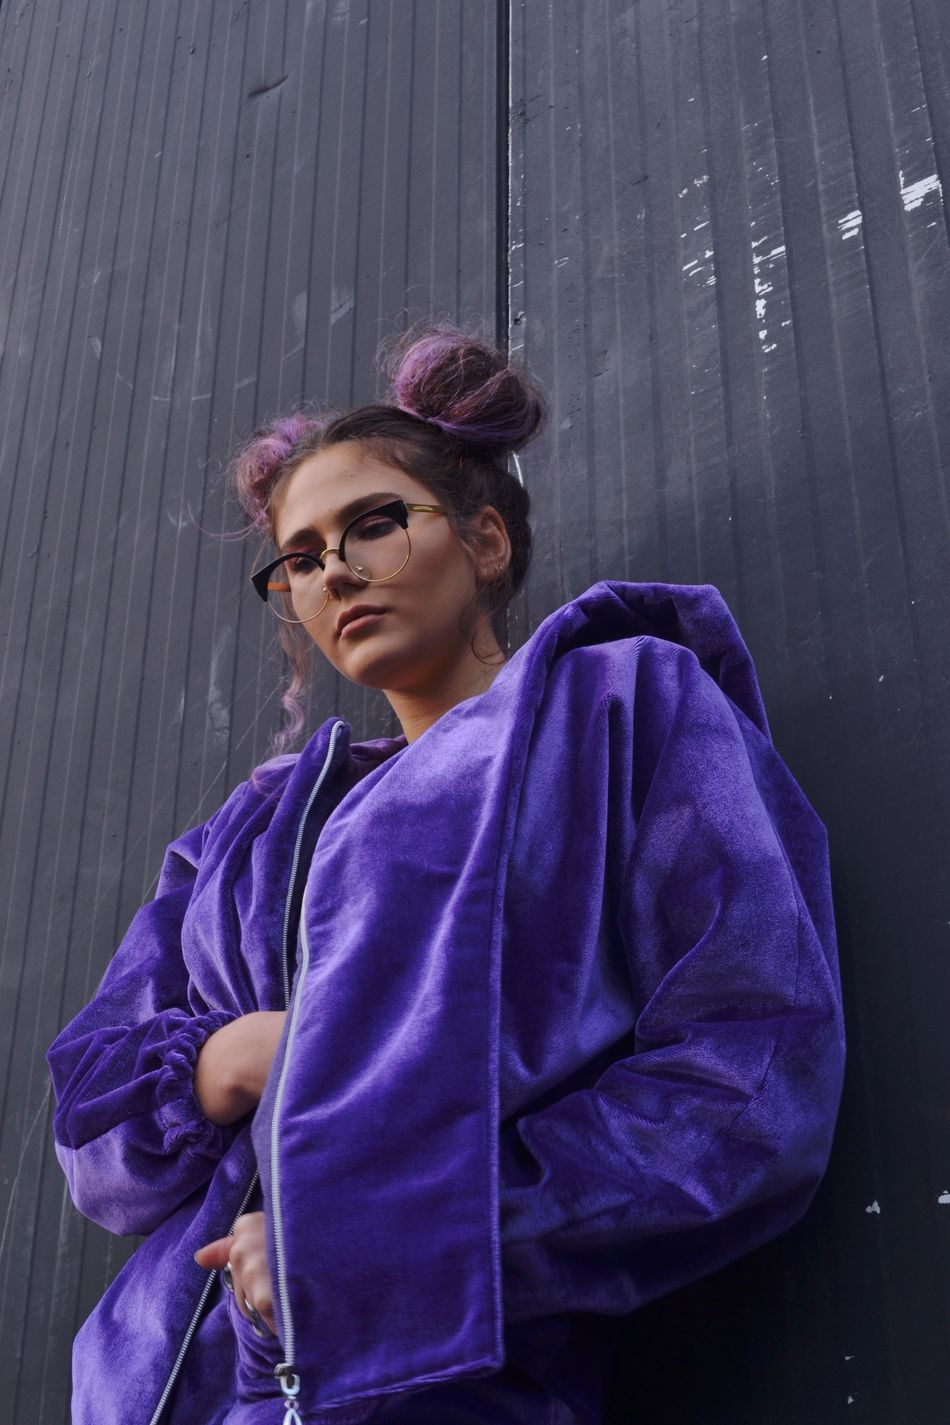 The Week On Eyem Femininity Beauty Fashion Photography Fashion Jacket Purple Glasses Young Adult Natural Light Photography ArtWork Standing Enjoying Life Portrait Of A Woman Urbanphotography Taking Photos Urban Smoke Buns